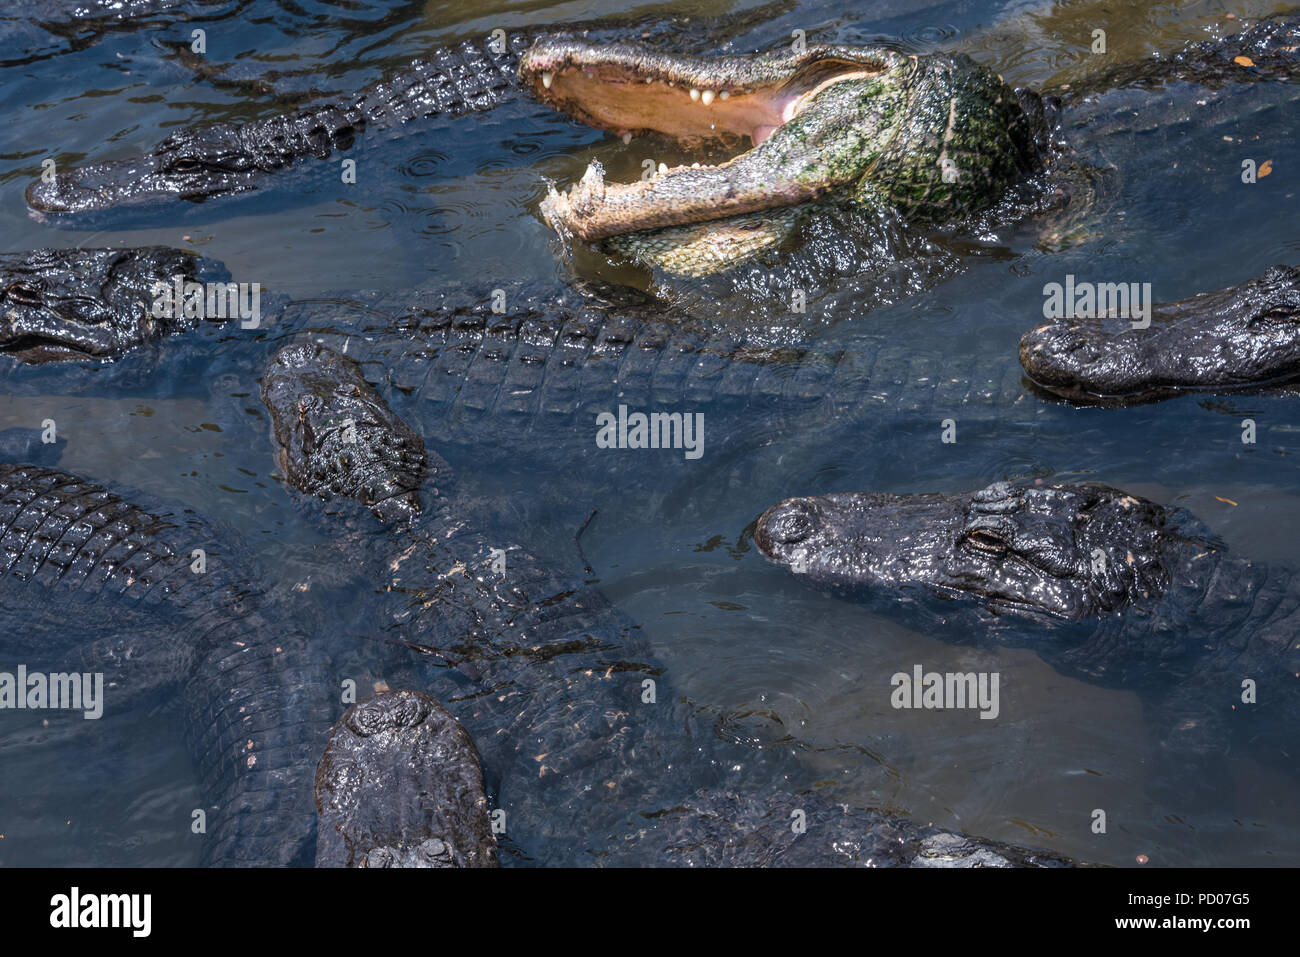 A congregation of gators at St. Augustine Alligator Farm Zoological Park in St. Augustine, Florida. (USA) - Stock Image